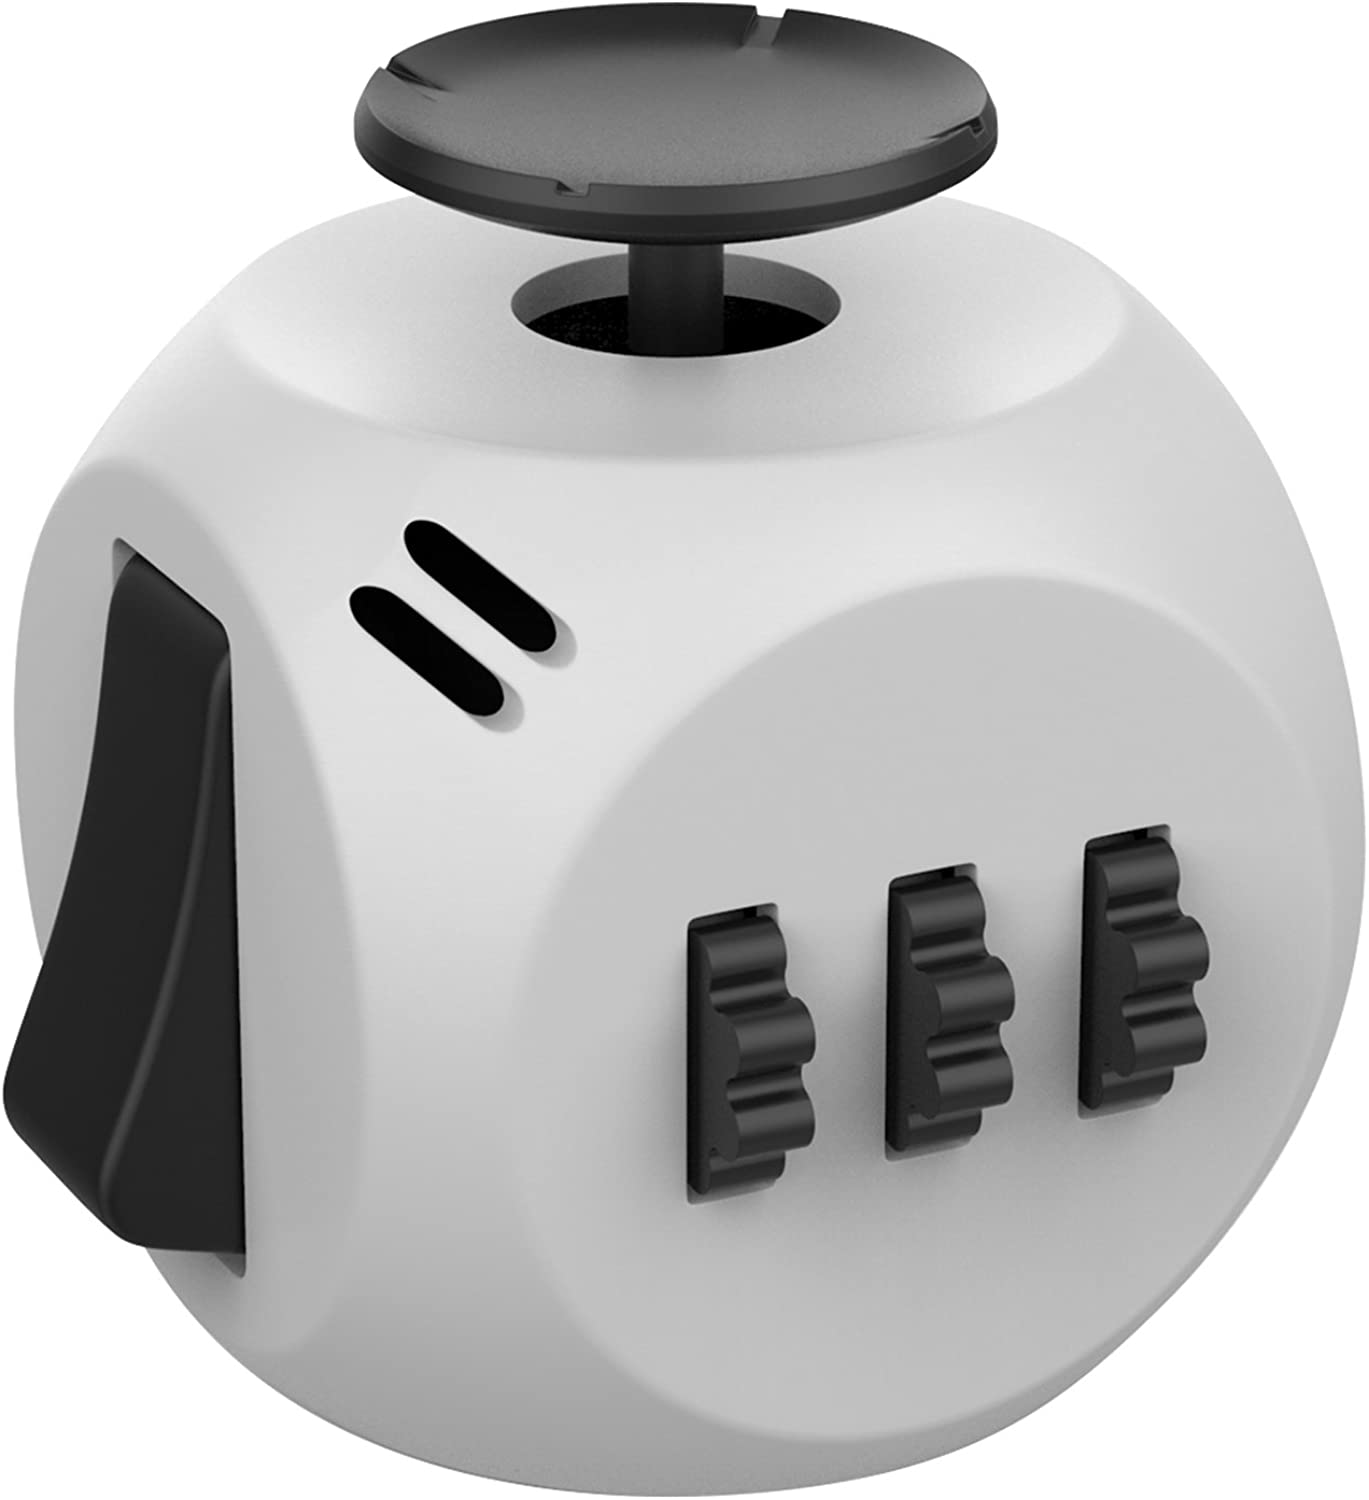 Fidget Cube, Helect New Generation 3.0 Fidget Cube Toy Relieves Stress and Anxiety with Portable Design for Work, Class and Home (Grey Black)